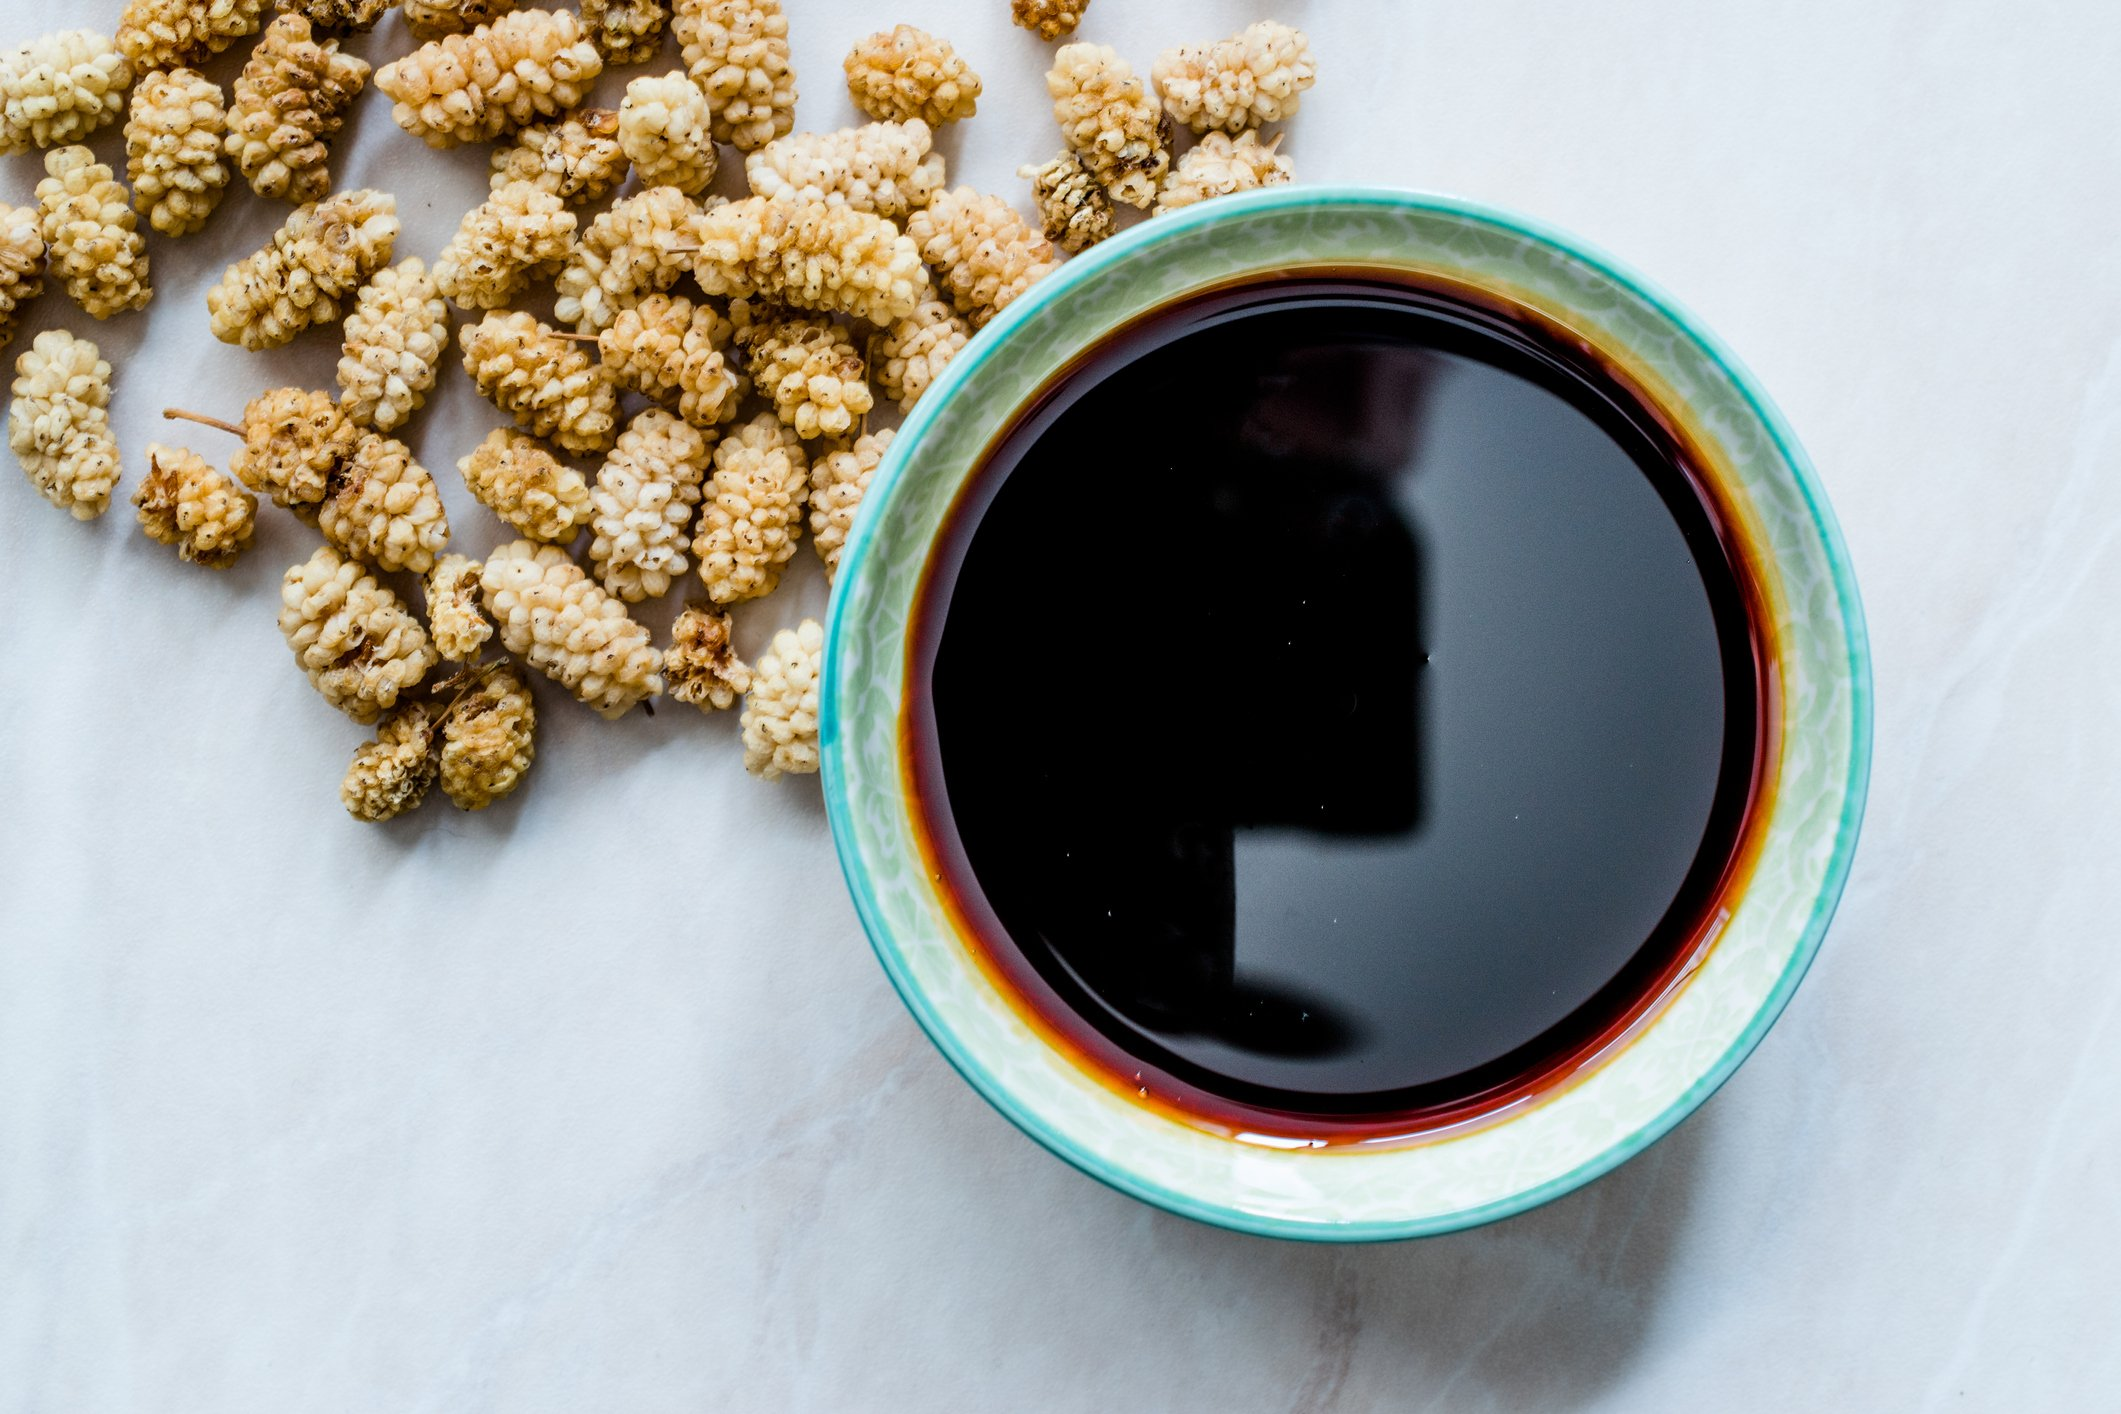 Before honey came onto the scene, grape molasses was used as sweetener. (iStock Photo)